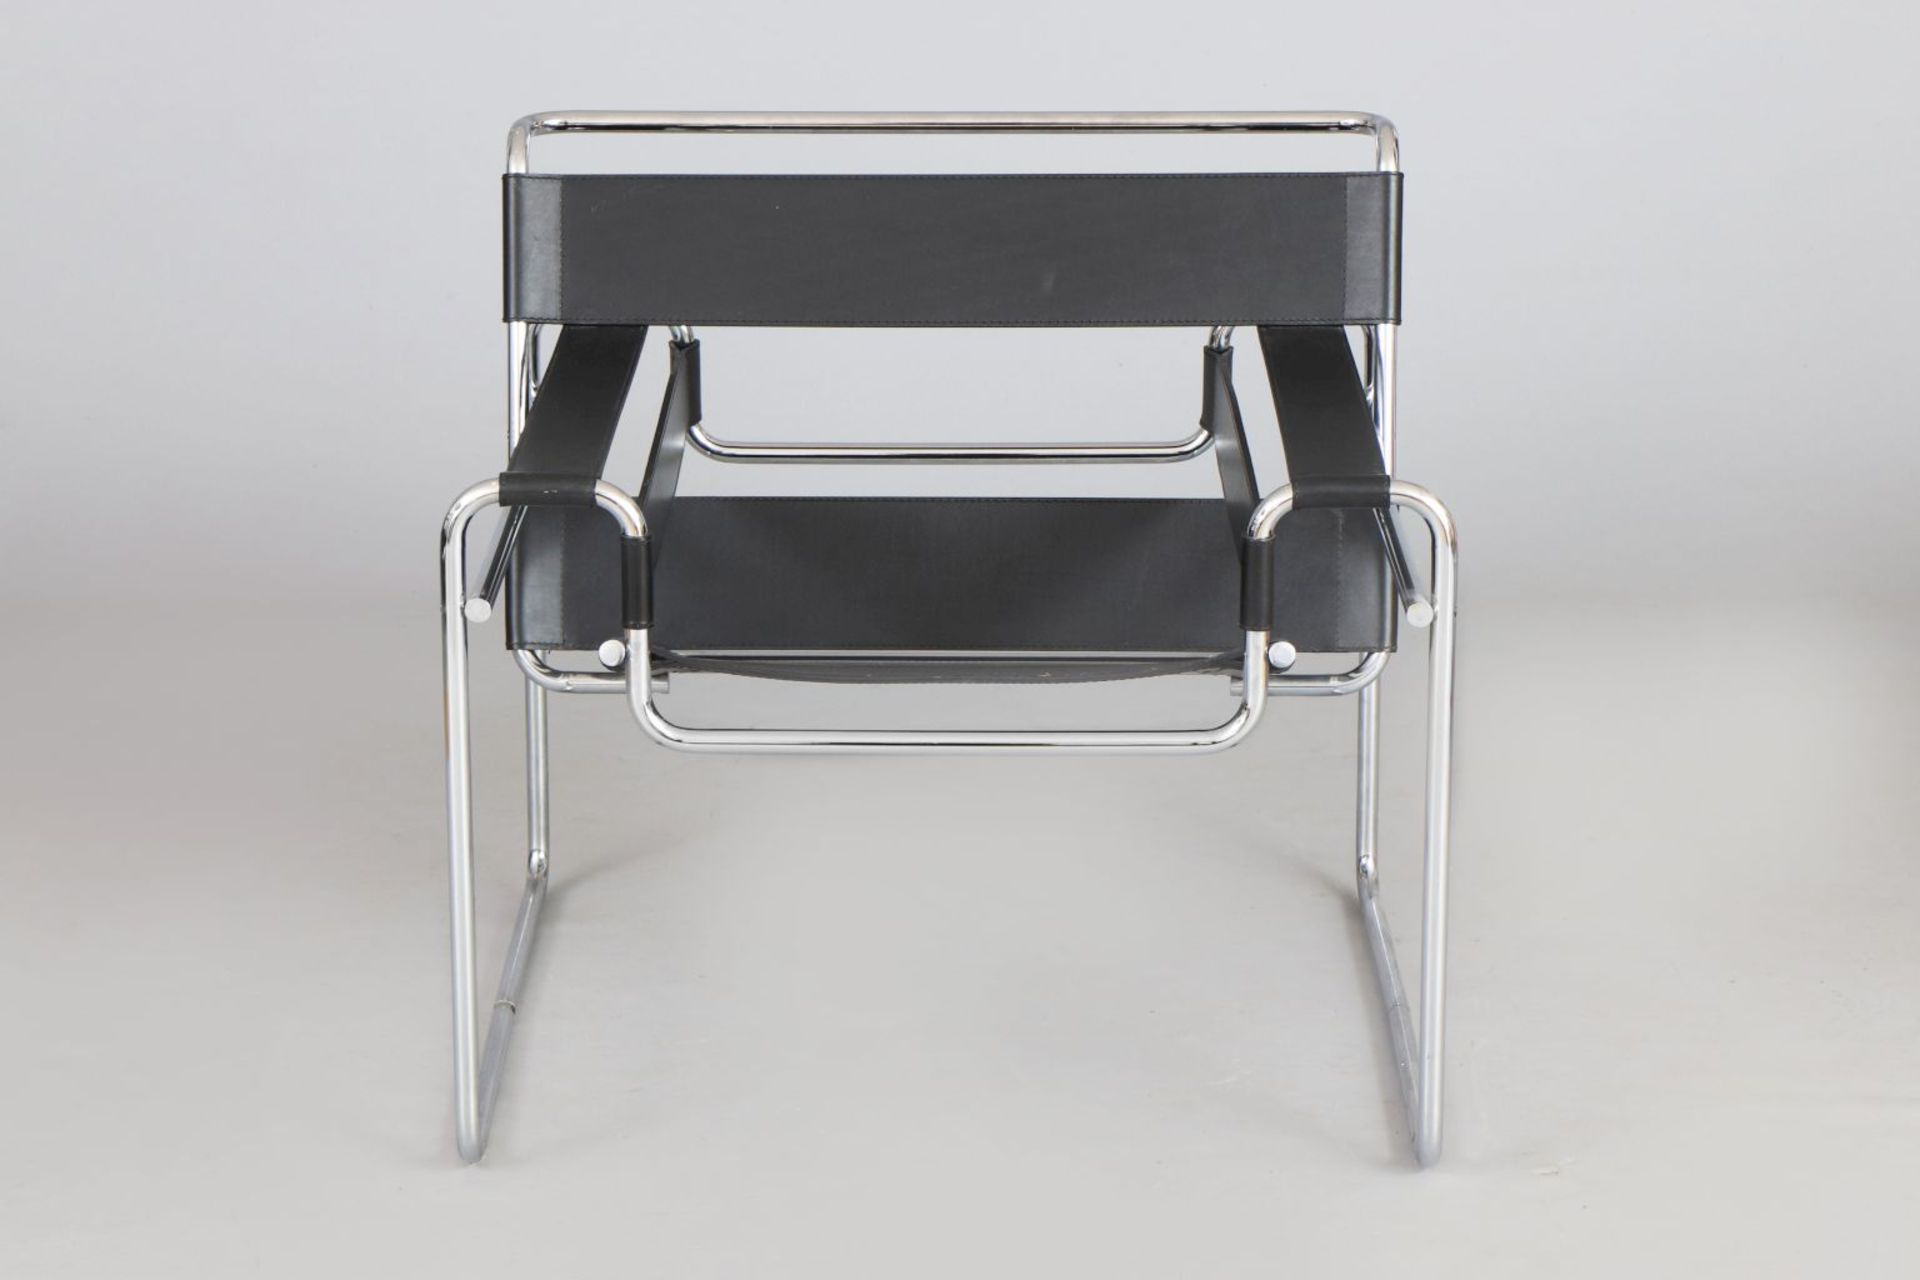 MARCEL BREUER ¨Wassily Chair¨ - Image 2 of 3